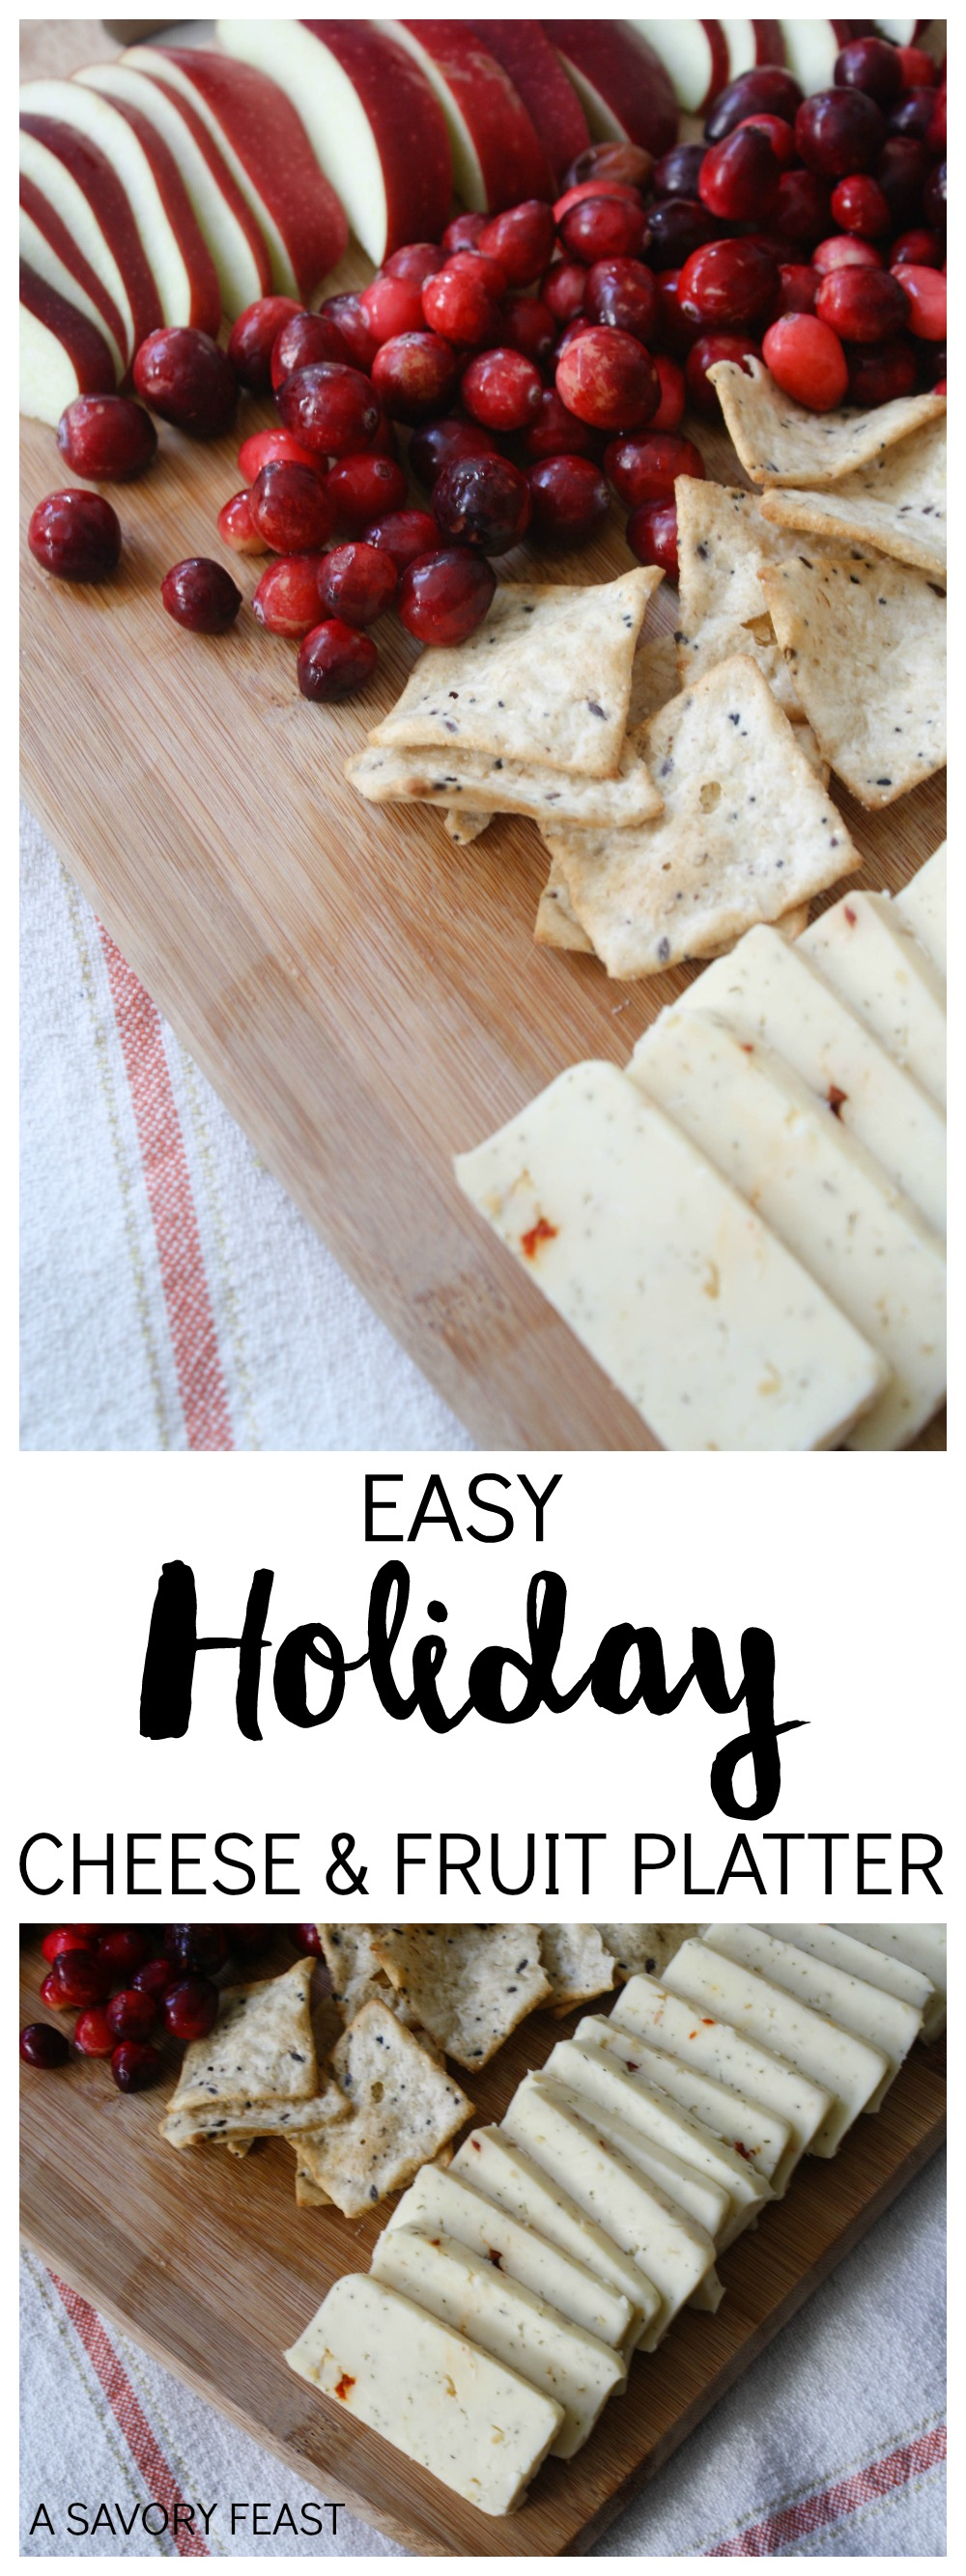 Easy Holiday Cheese and Fruit Platter